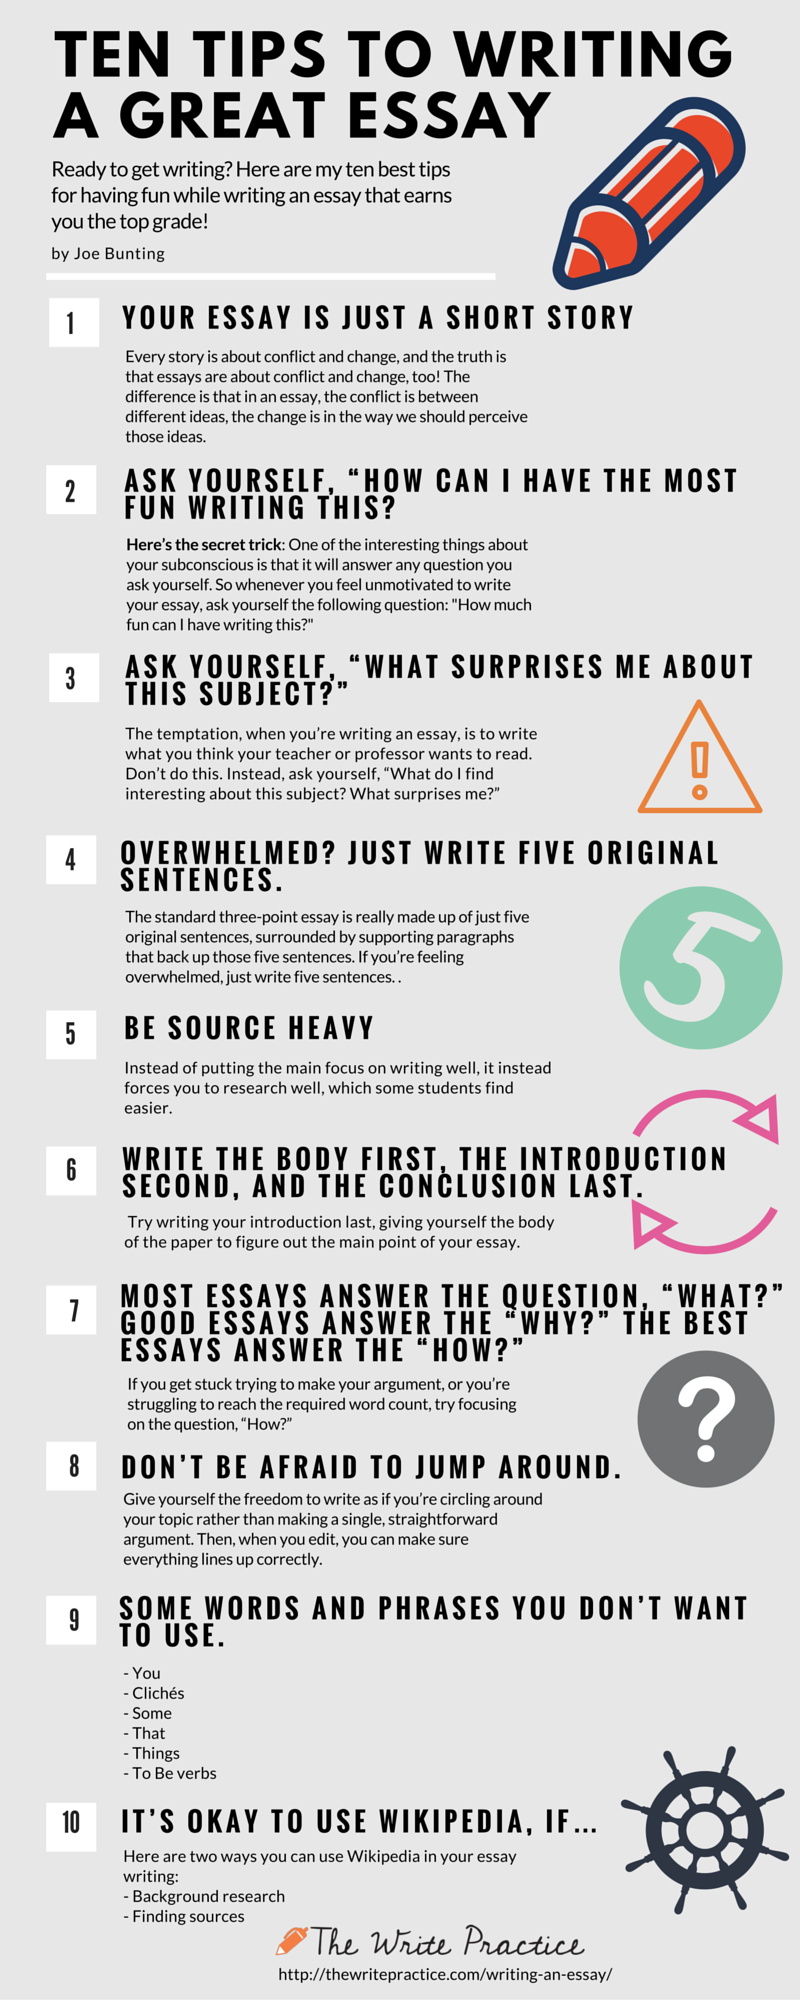 003 Tips For Writing An Essay1 How To Write Better Essay Phenomenal A Essays Bryan Greetham Pdf Good Introduction Full